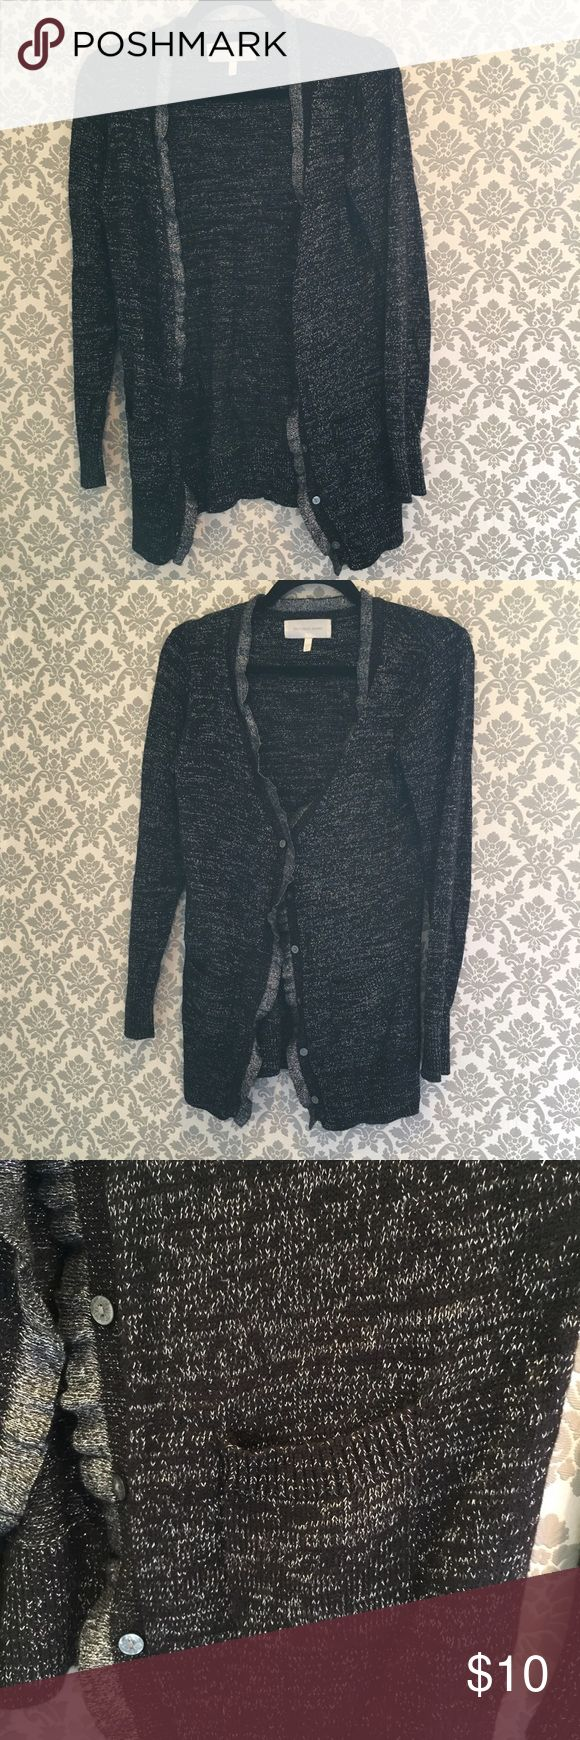 Black and silver cardigan Black and silver cardigan Sweaters Cardigans